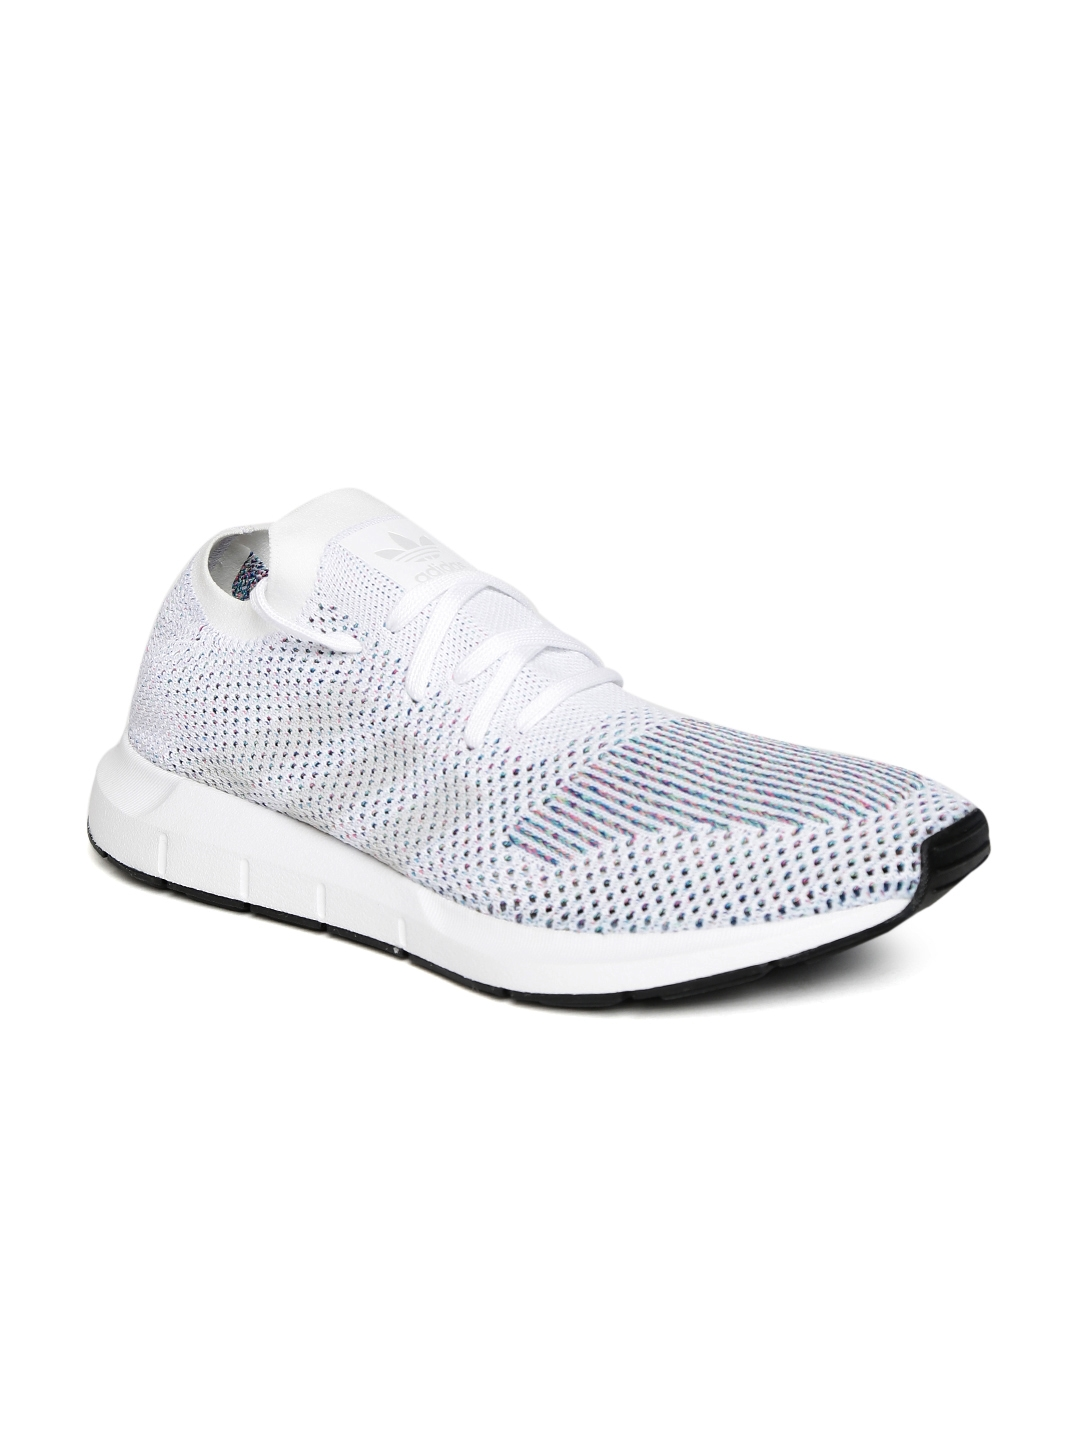 49d76227667d1 Buy ADIDAS Originals Men Off White Swift Run PrimeKnit Sneakers ...